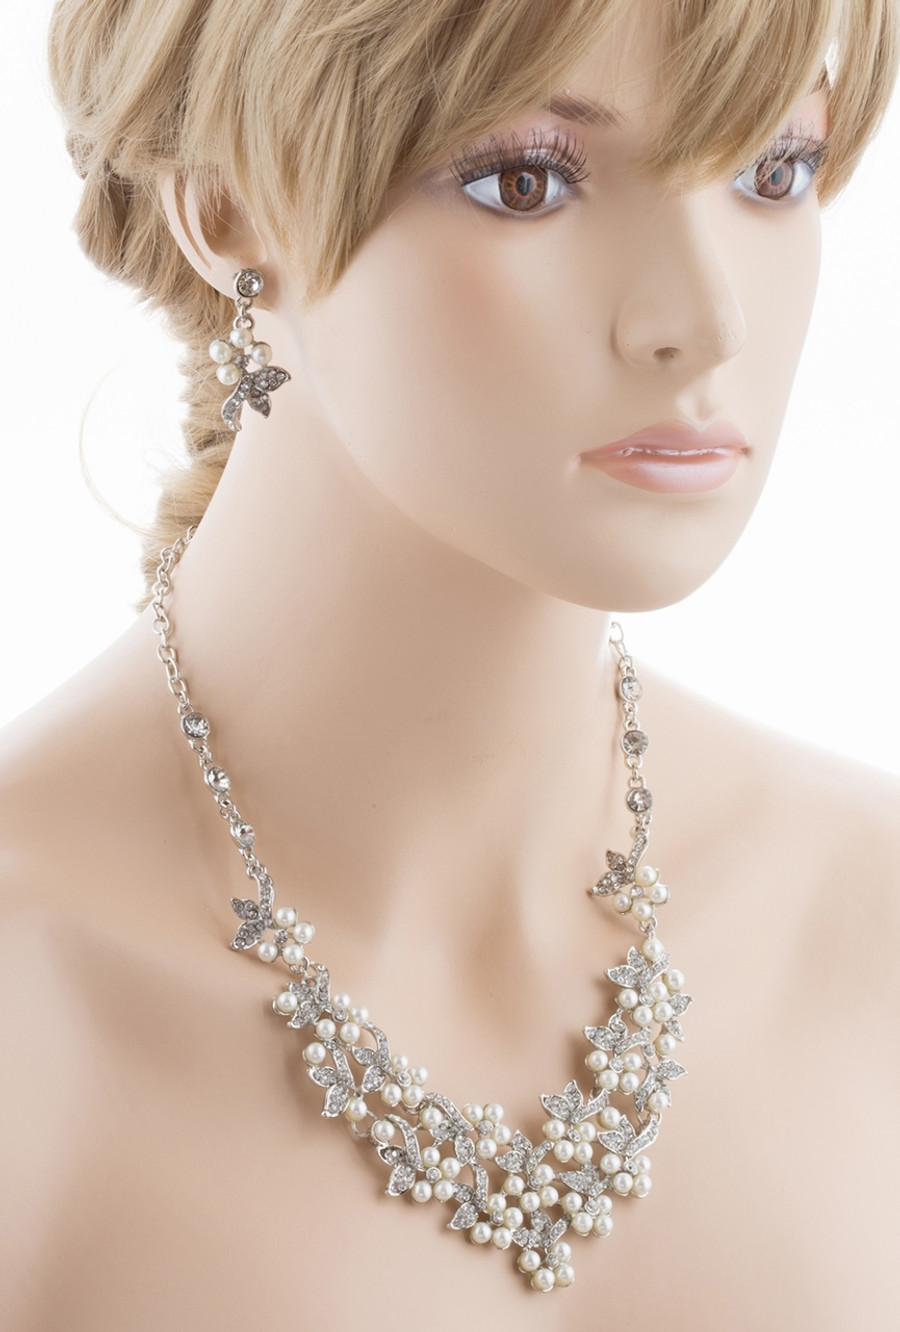 Bridal Wedding Jewelry Set Necklace Crystal Rhinestone Pearl Floral Bib Silver